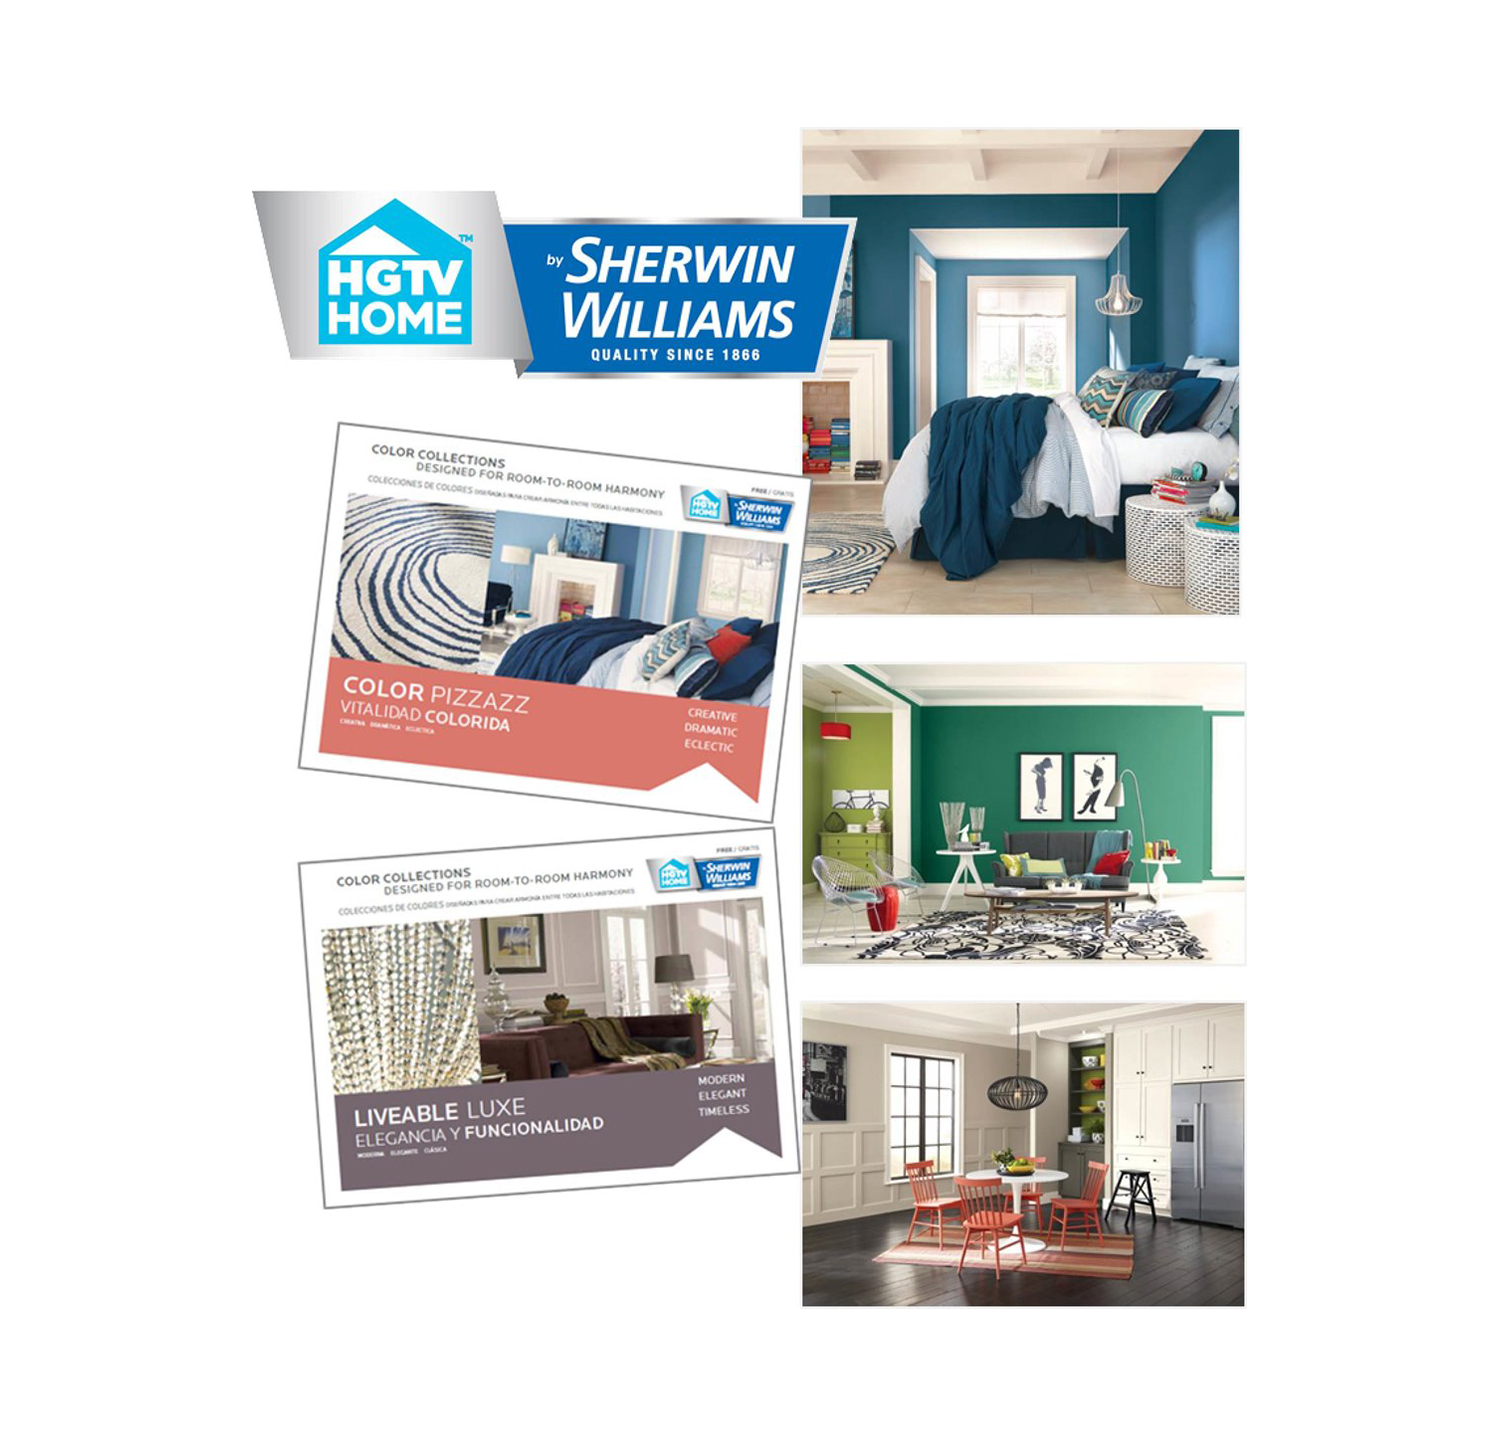 HGTV_6_sherwinWilliams.jpg